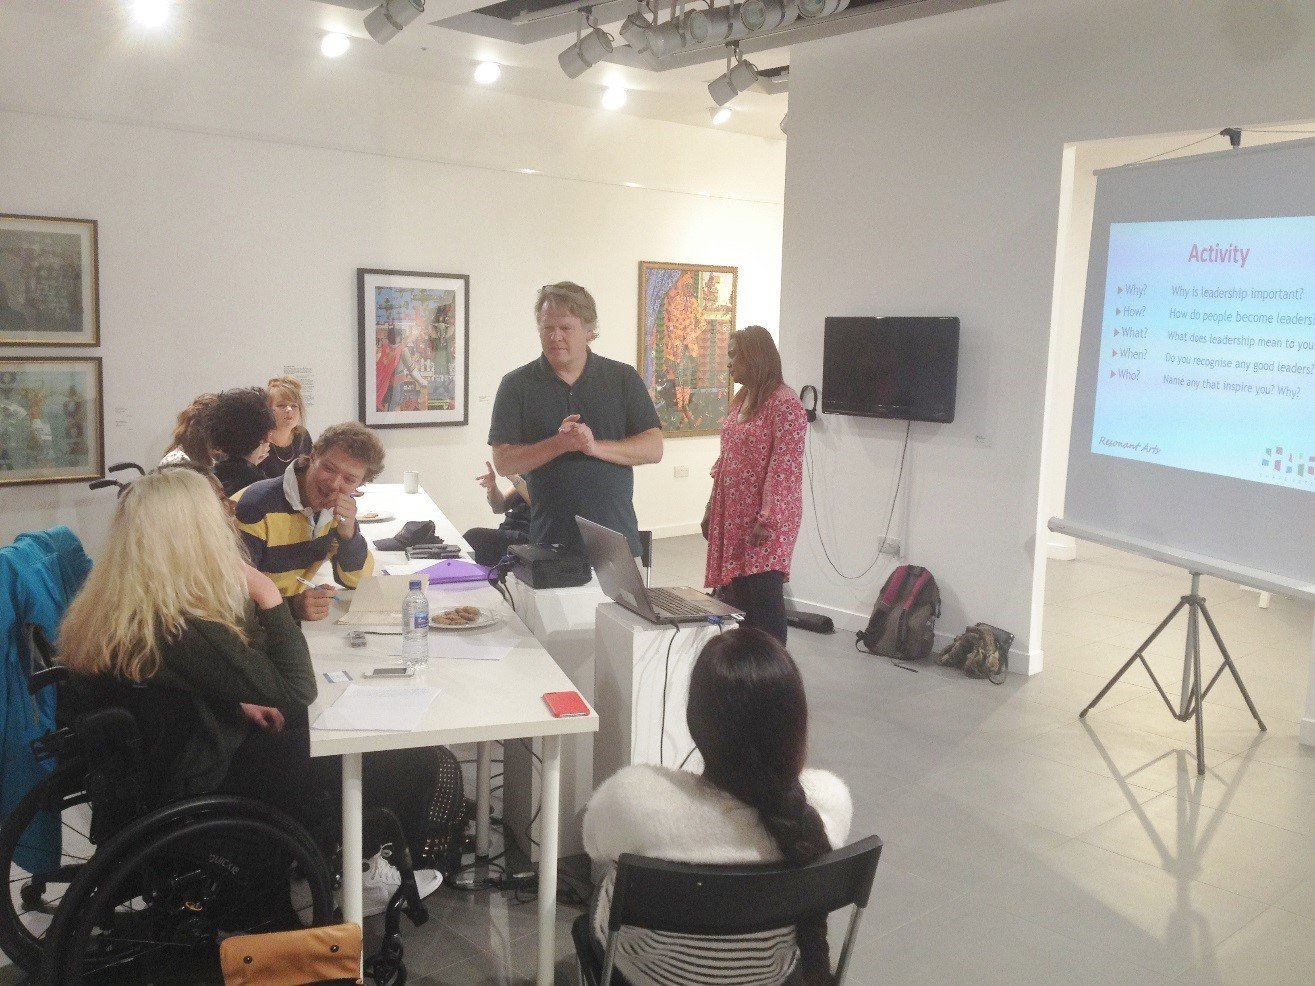 Workshop taking place in our pop-up gallery.